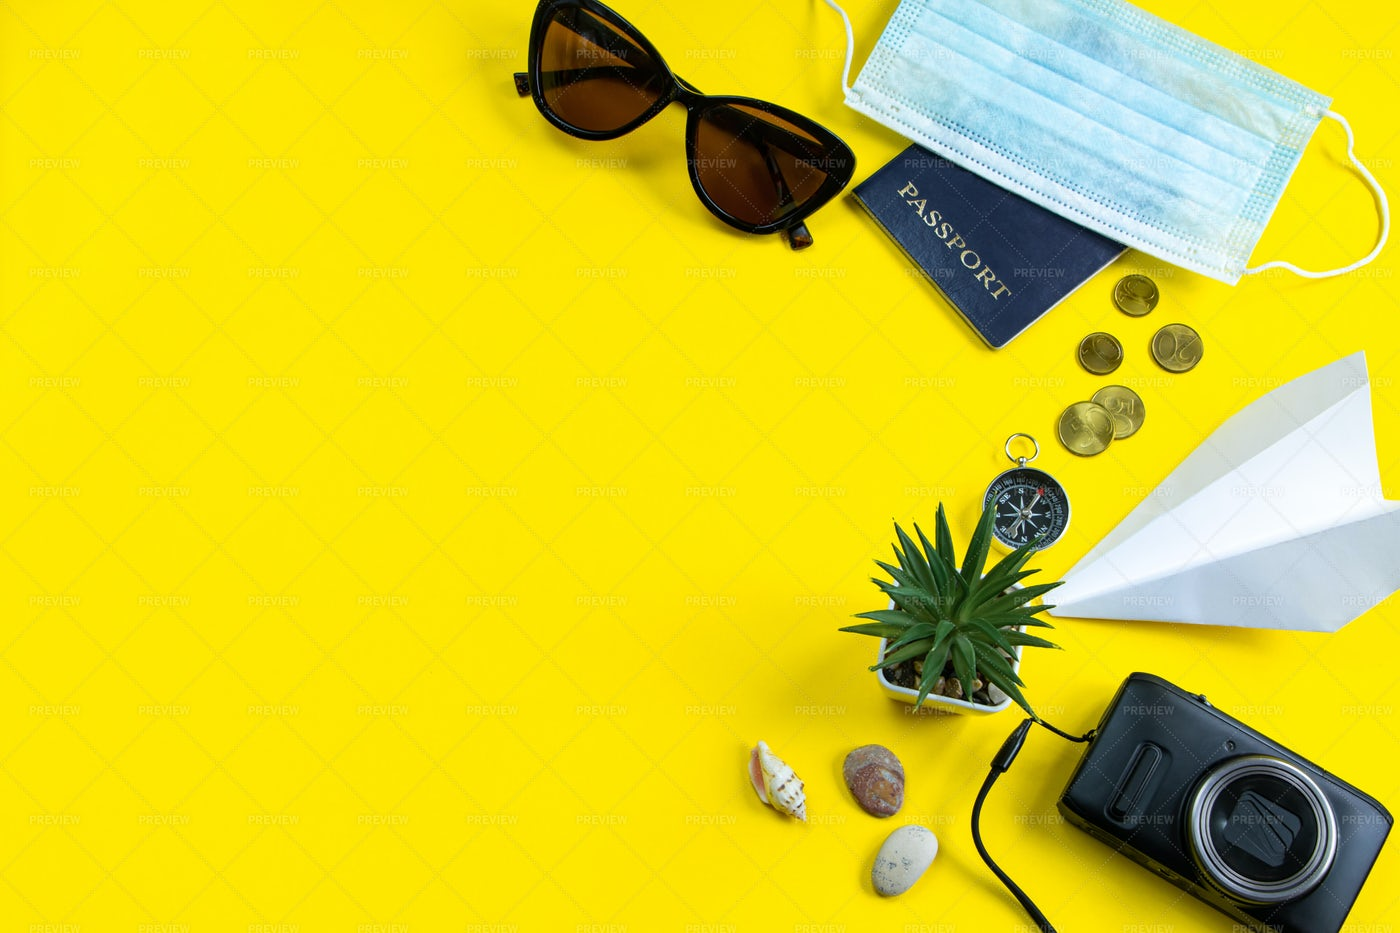 Travel Accessories On Yellow: Stock Photos